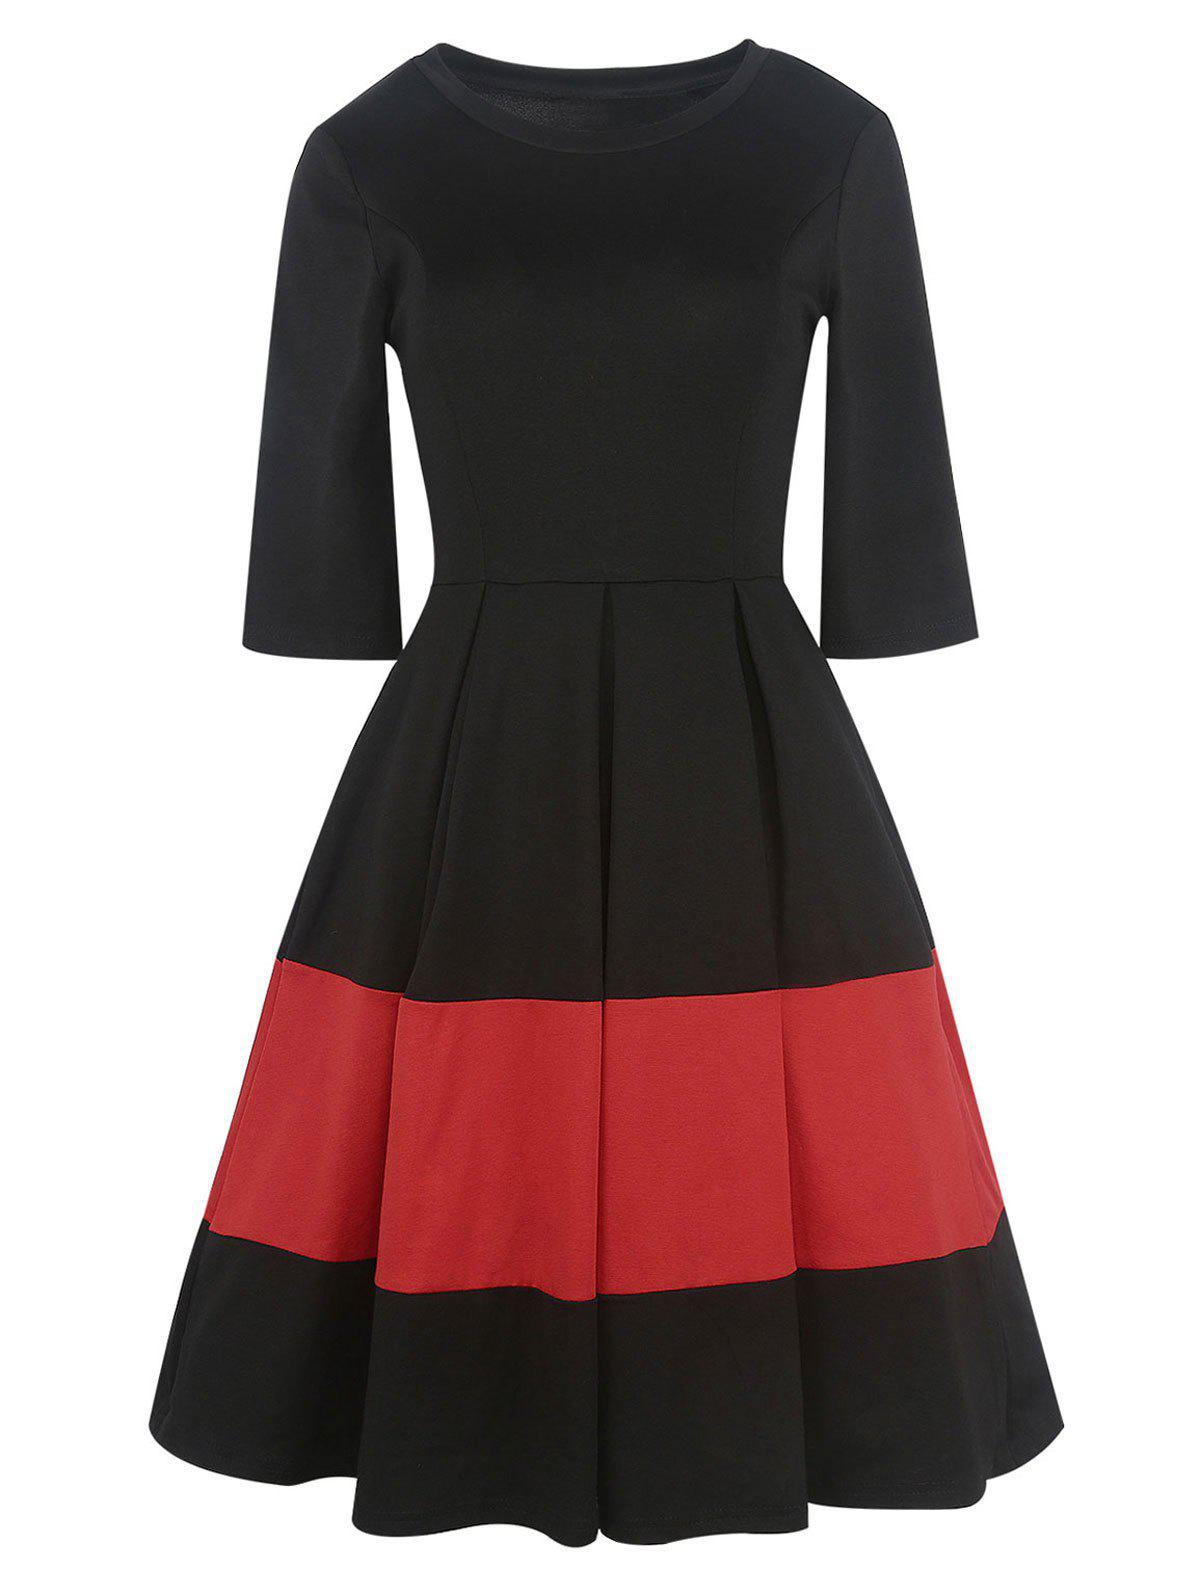 Vintage Two Tone Pleated A Line DressWOMEN<br><br>Size: L; Color: BLACK; Style: Vintage; Material: Polyester,Spandex; Silhouette: A-Line; Dresses Length: Knee-Length; Neckline: Round Collar; Sleeve Length: 3/4 Length Sleeves; Pattern Type: Others; With Belt: No; Season: Fall,Spring; Weight: 0.4200kg; Package Contents: 1 x Dress;